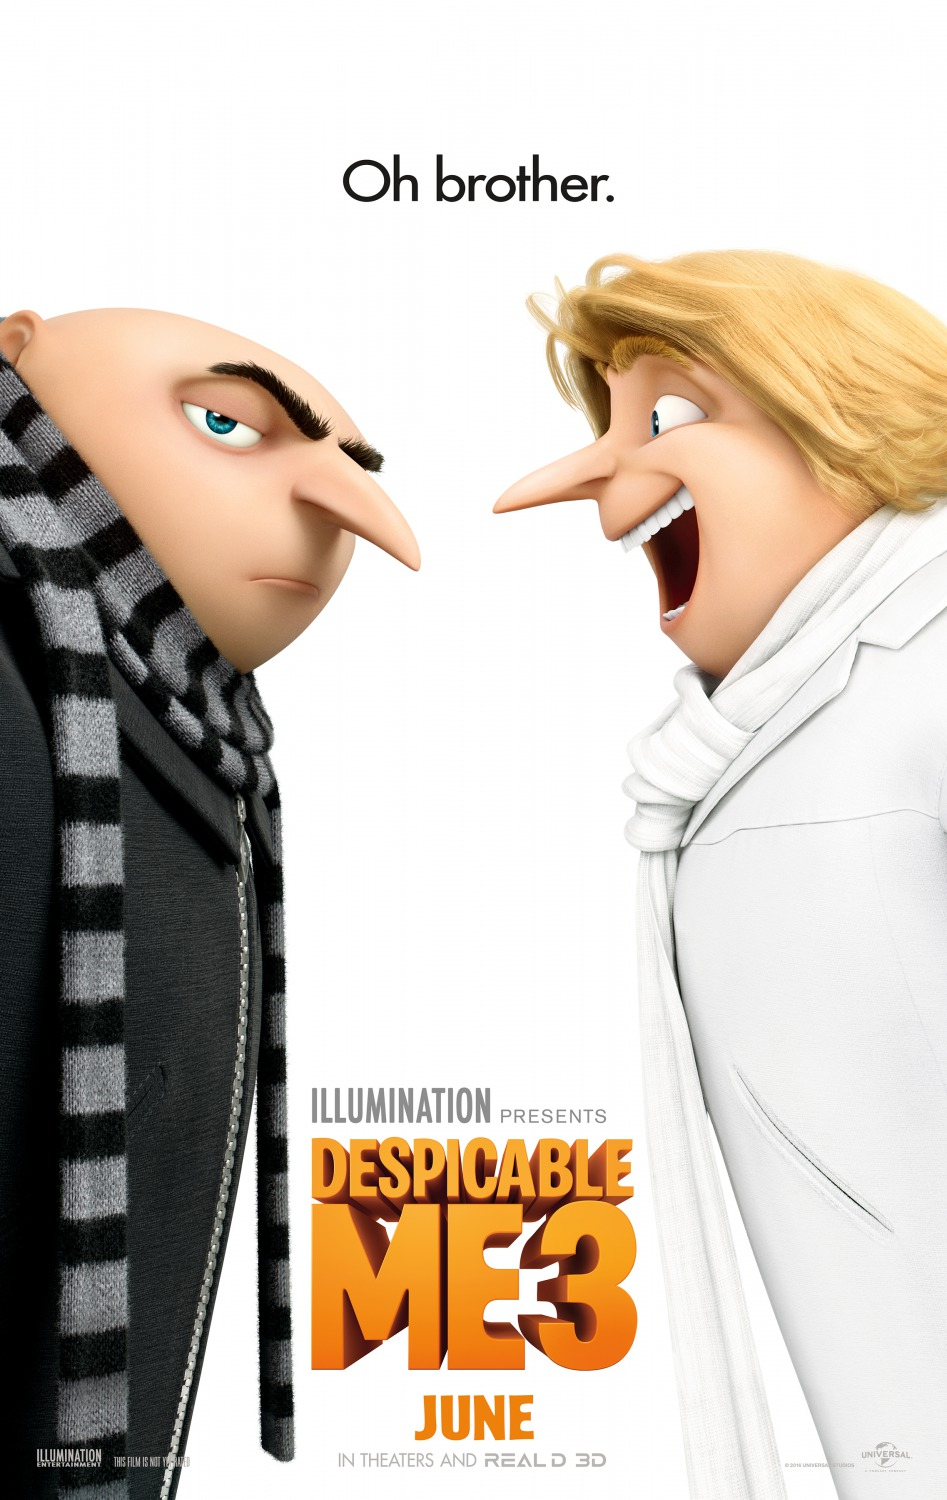 Despicable Me 3 Movie Poster.jpg